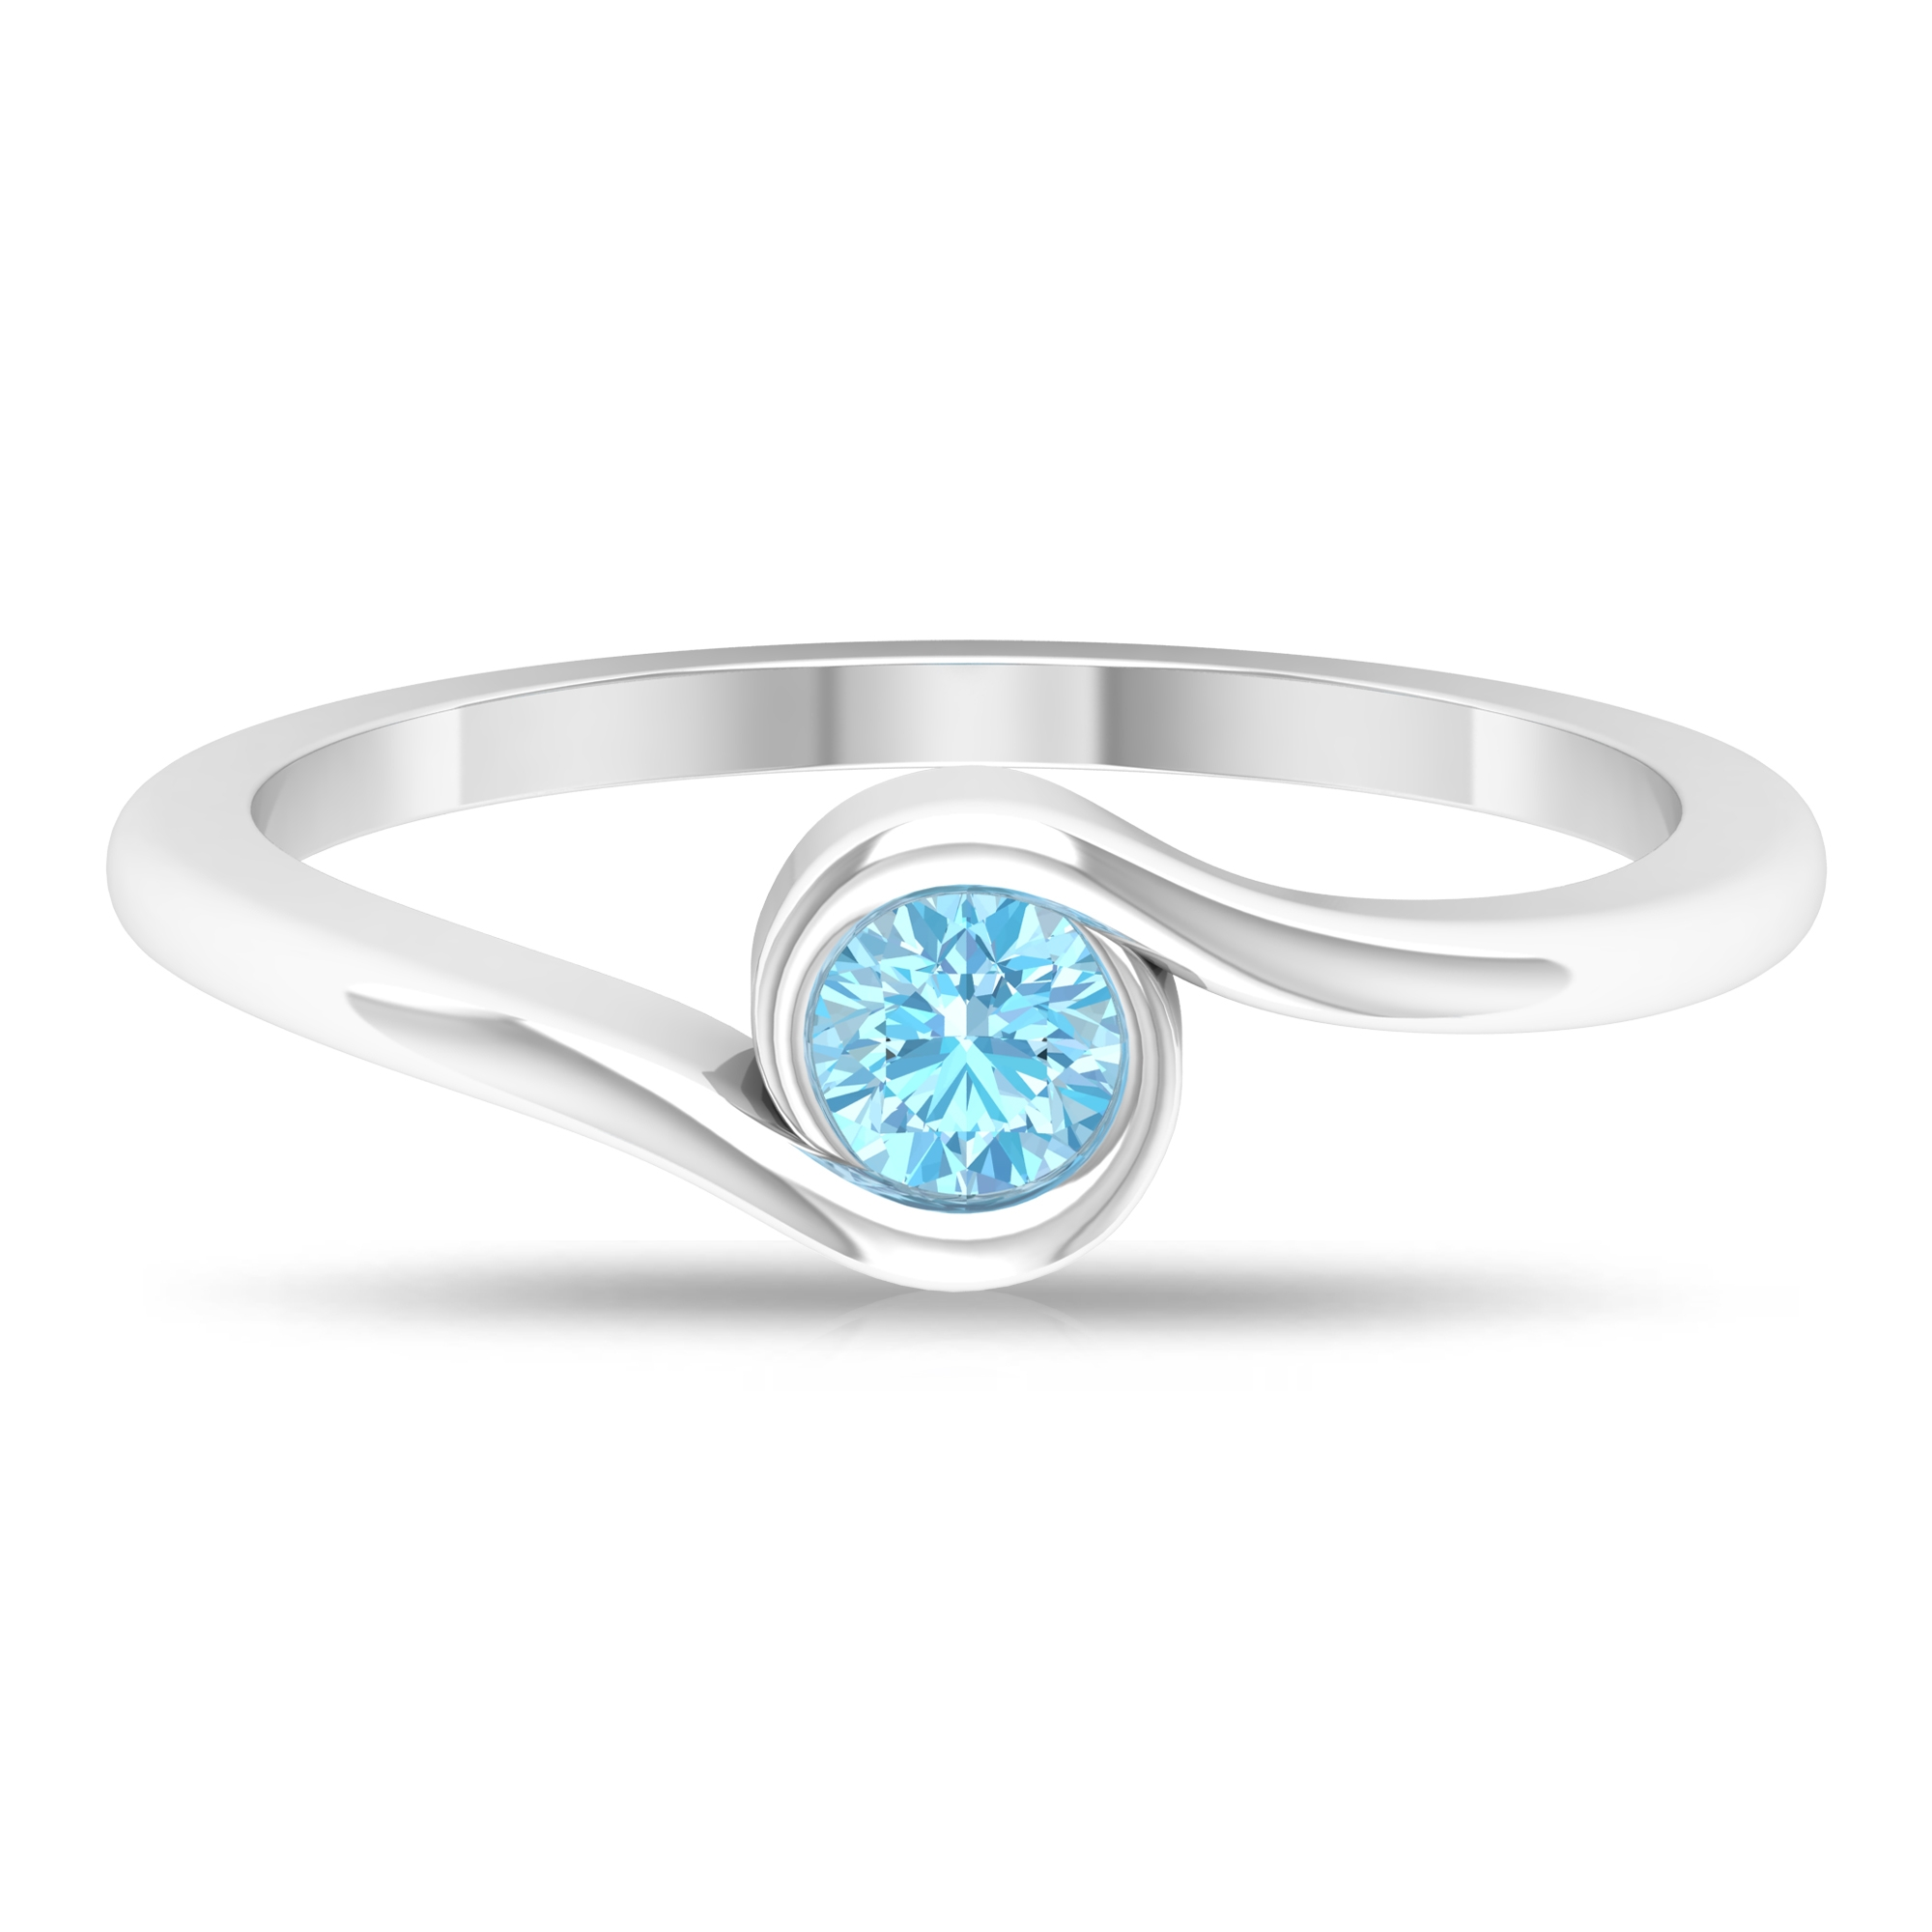 4 MM Round Cut Aquamarine Solitaire Bypass Set Ring with Bypass Shank